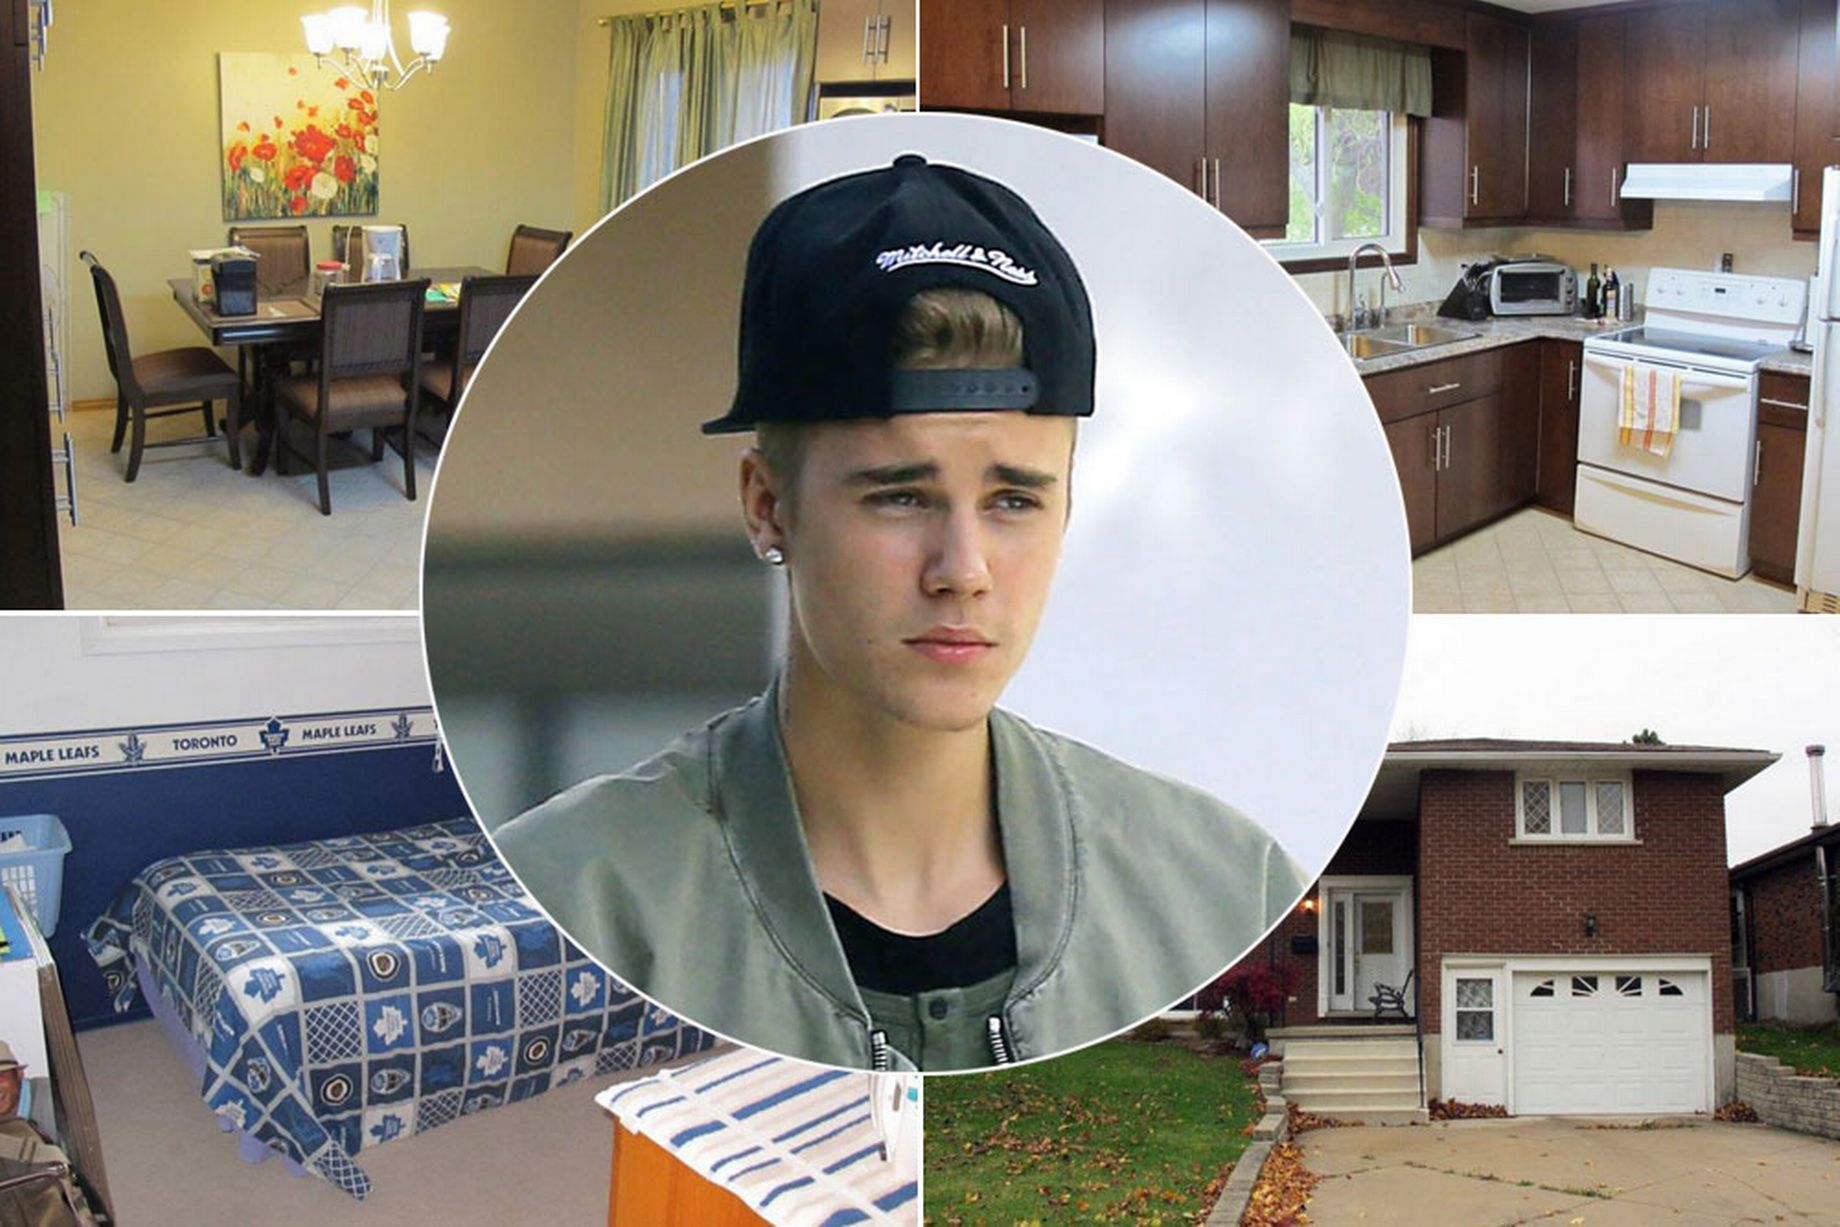 Justin Bieber PUNCHES A MAN, Caught on Video, Watch Here, Damning Footage!